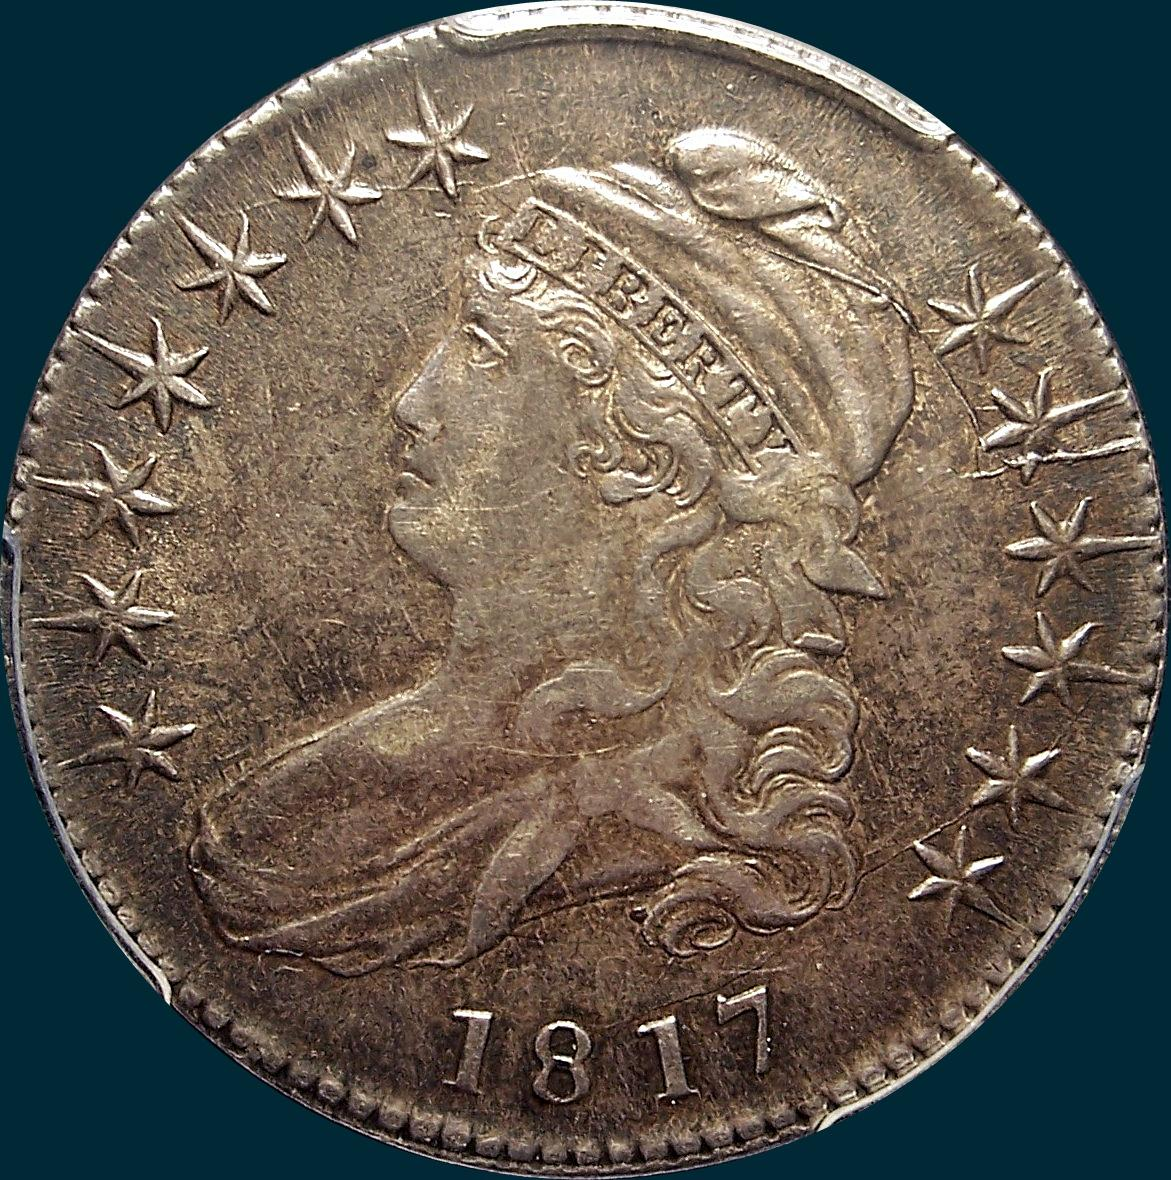 1817, O-105,Capped Buat, half dollar